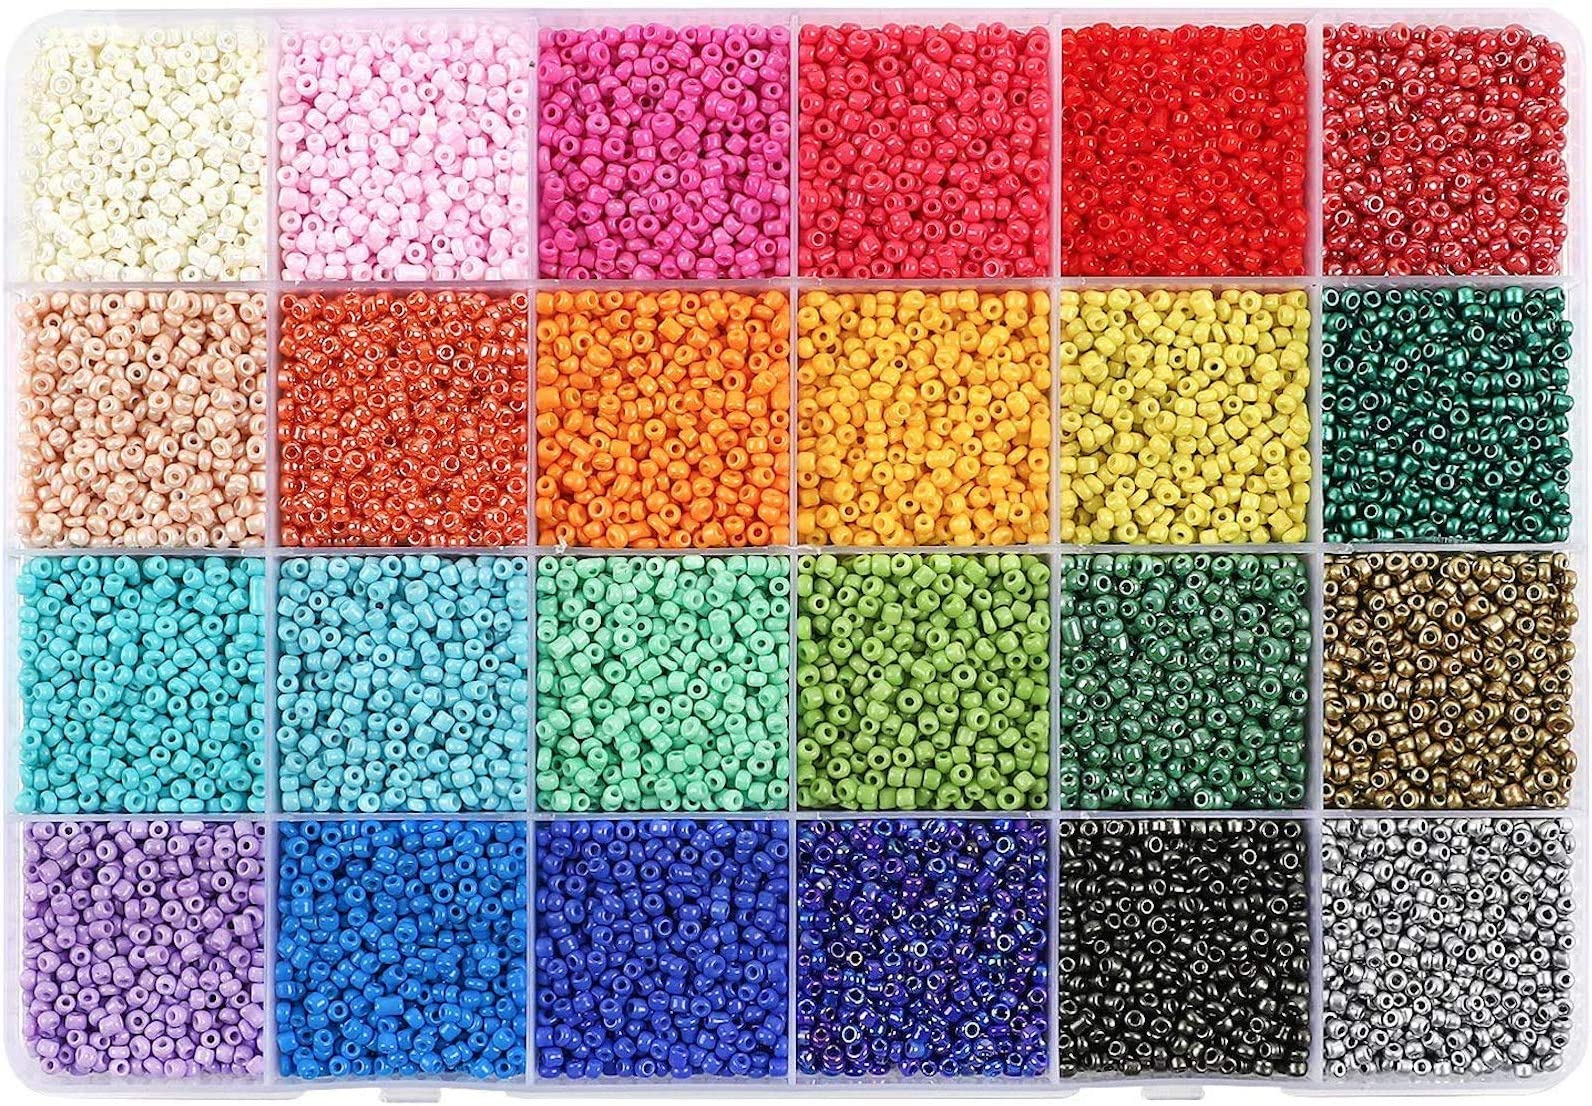 seed glass beads Macrame Supplies bright candy pink color 120 Opaque Glass Seed Beads small 1,5mm KB-K10 Earring Supply